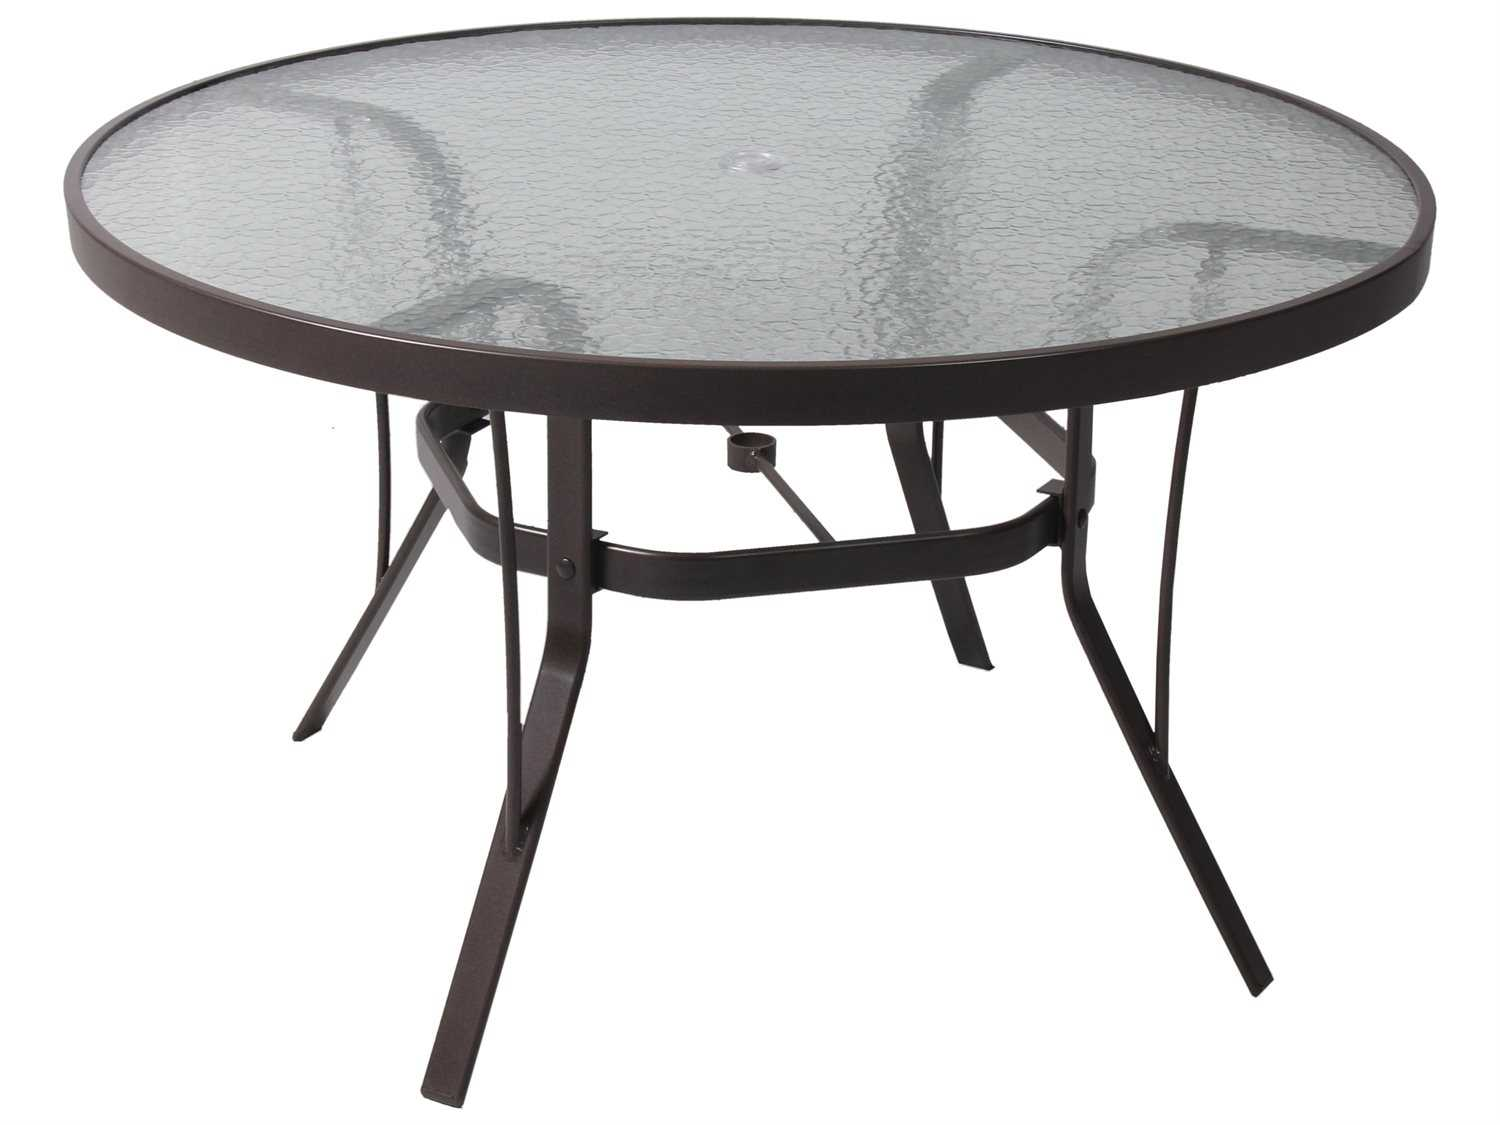 Suncoast cast aluminum 36 39 39 round glass top dining table 36kd Round glass dining table